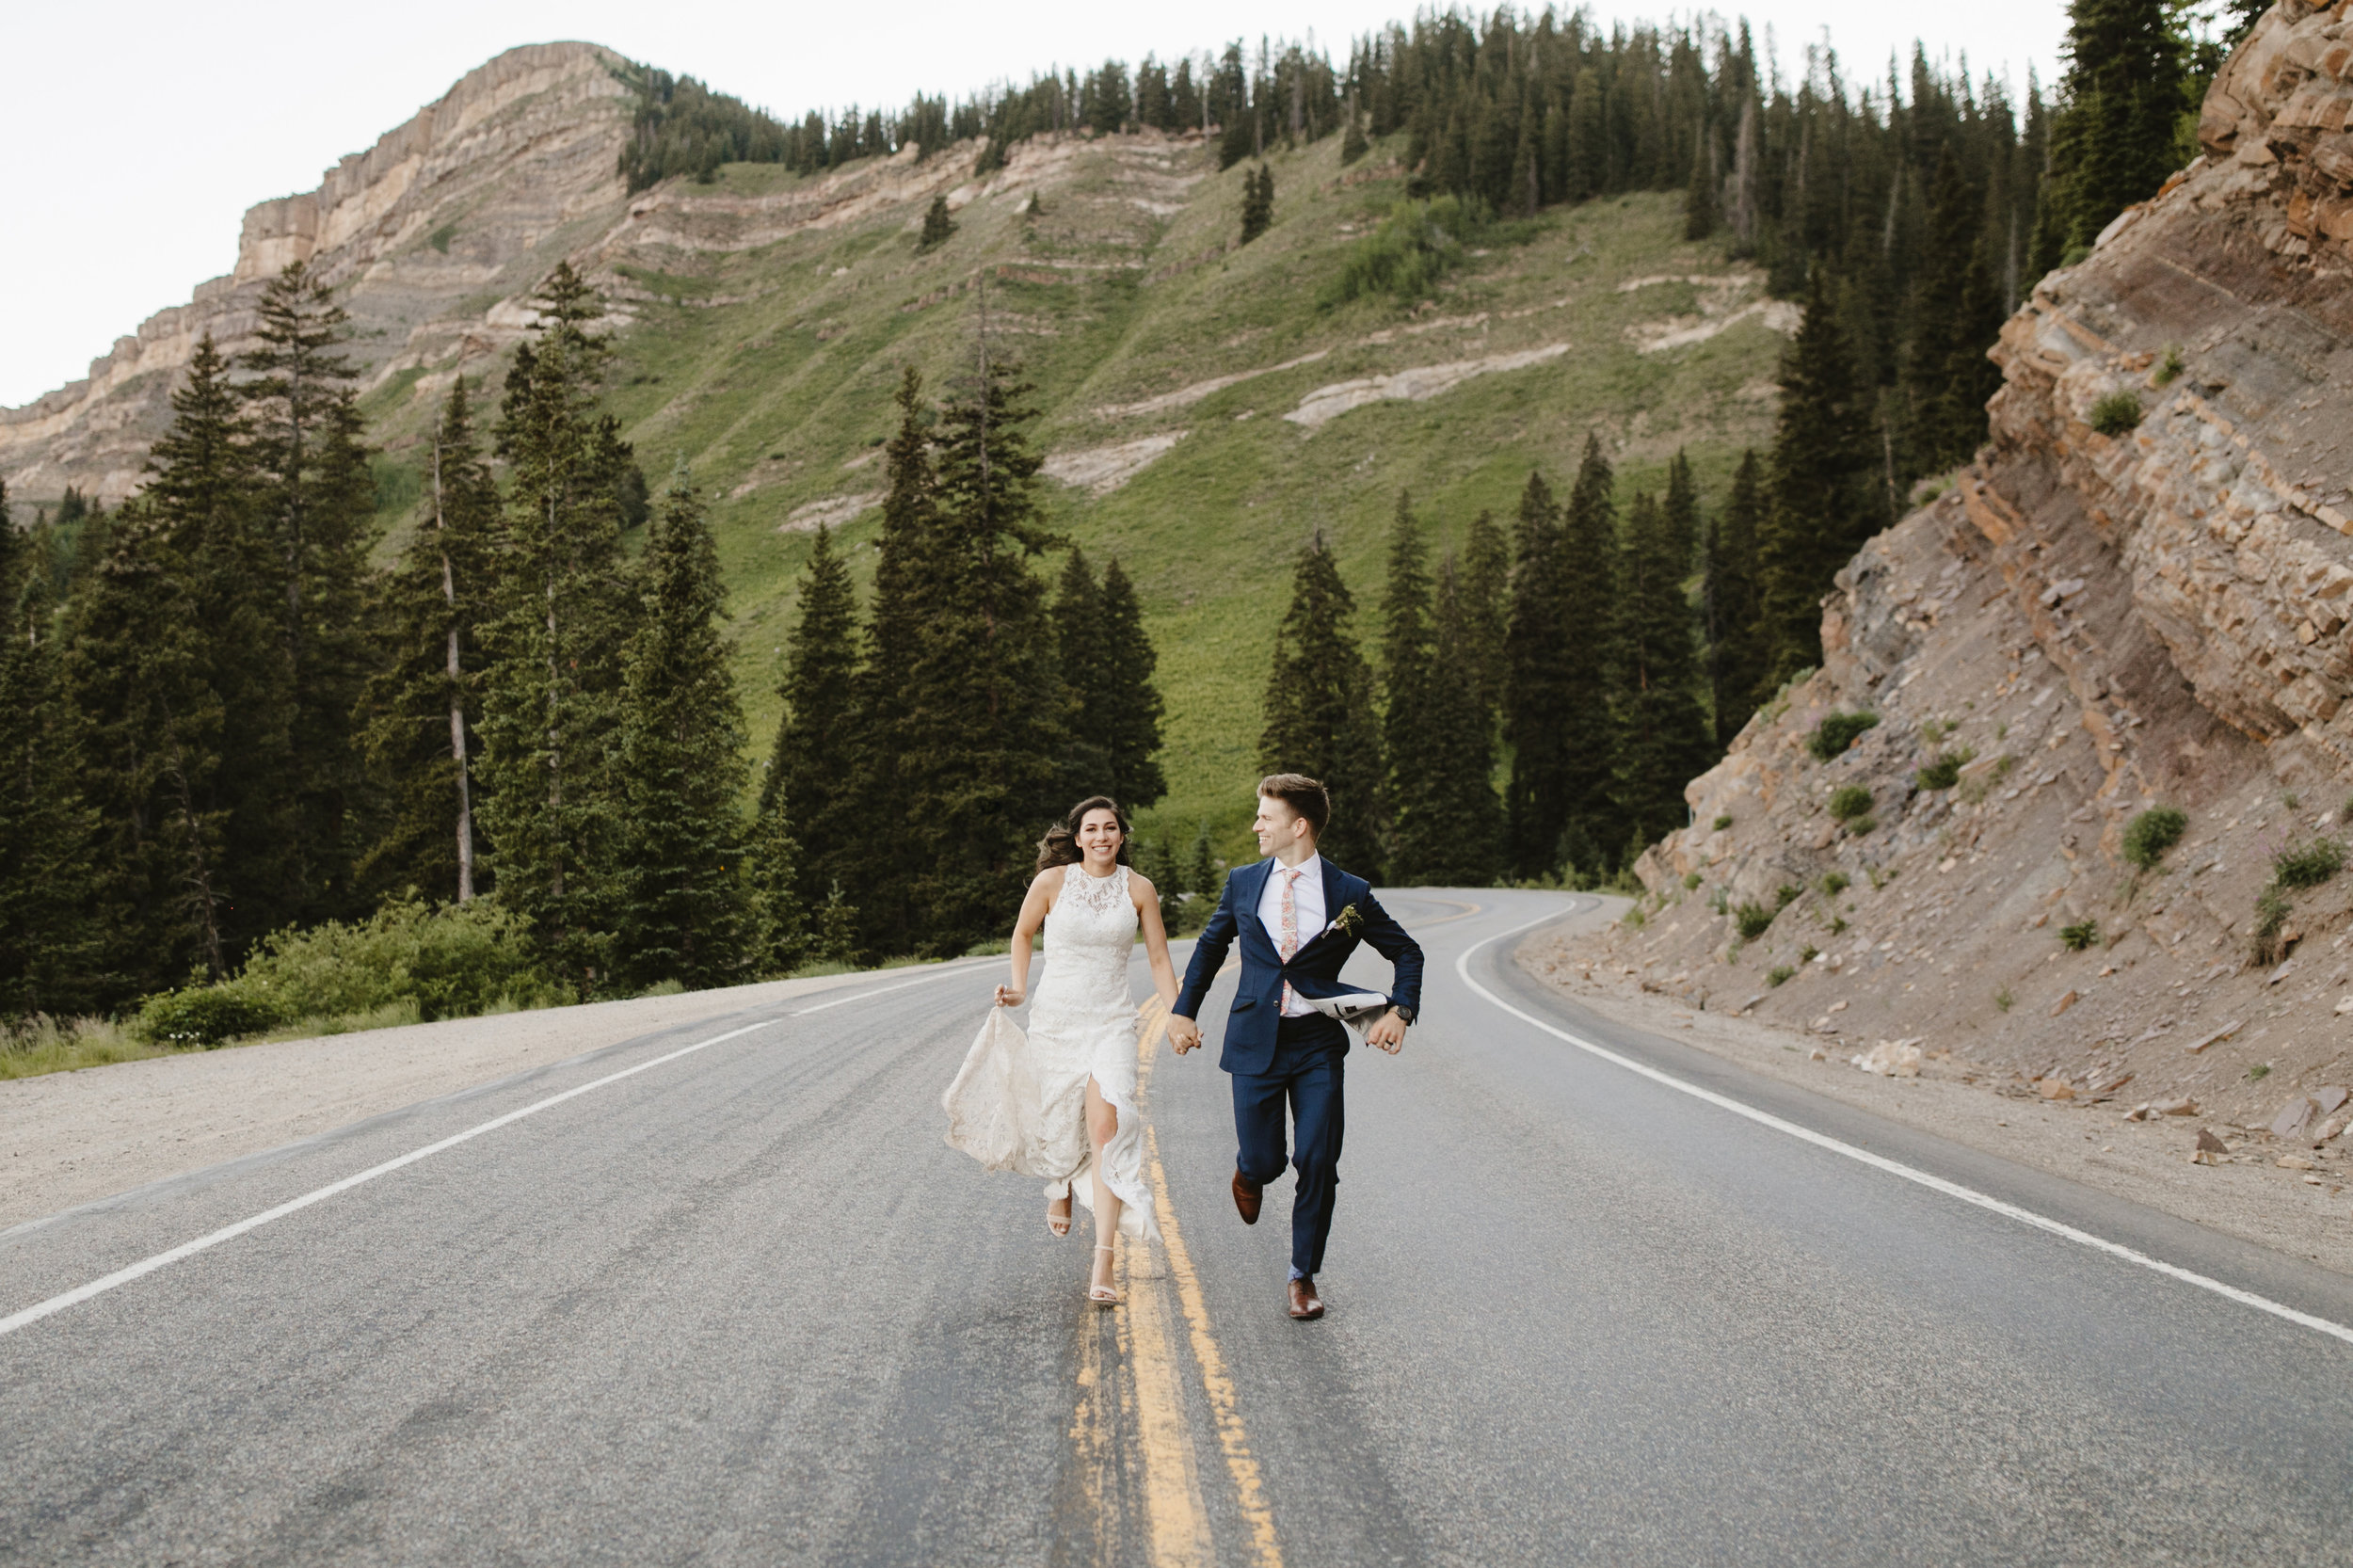 Aspen-elopement-photographer-colorado-destination-wedding.JPG